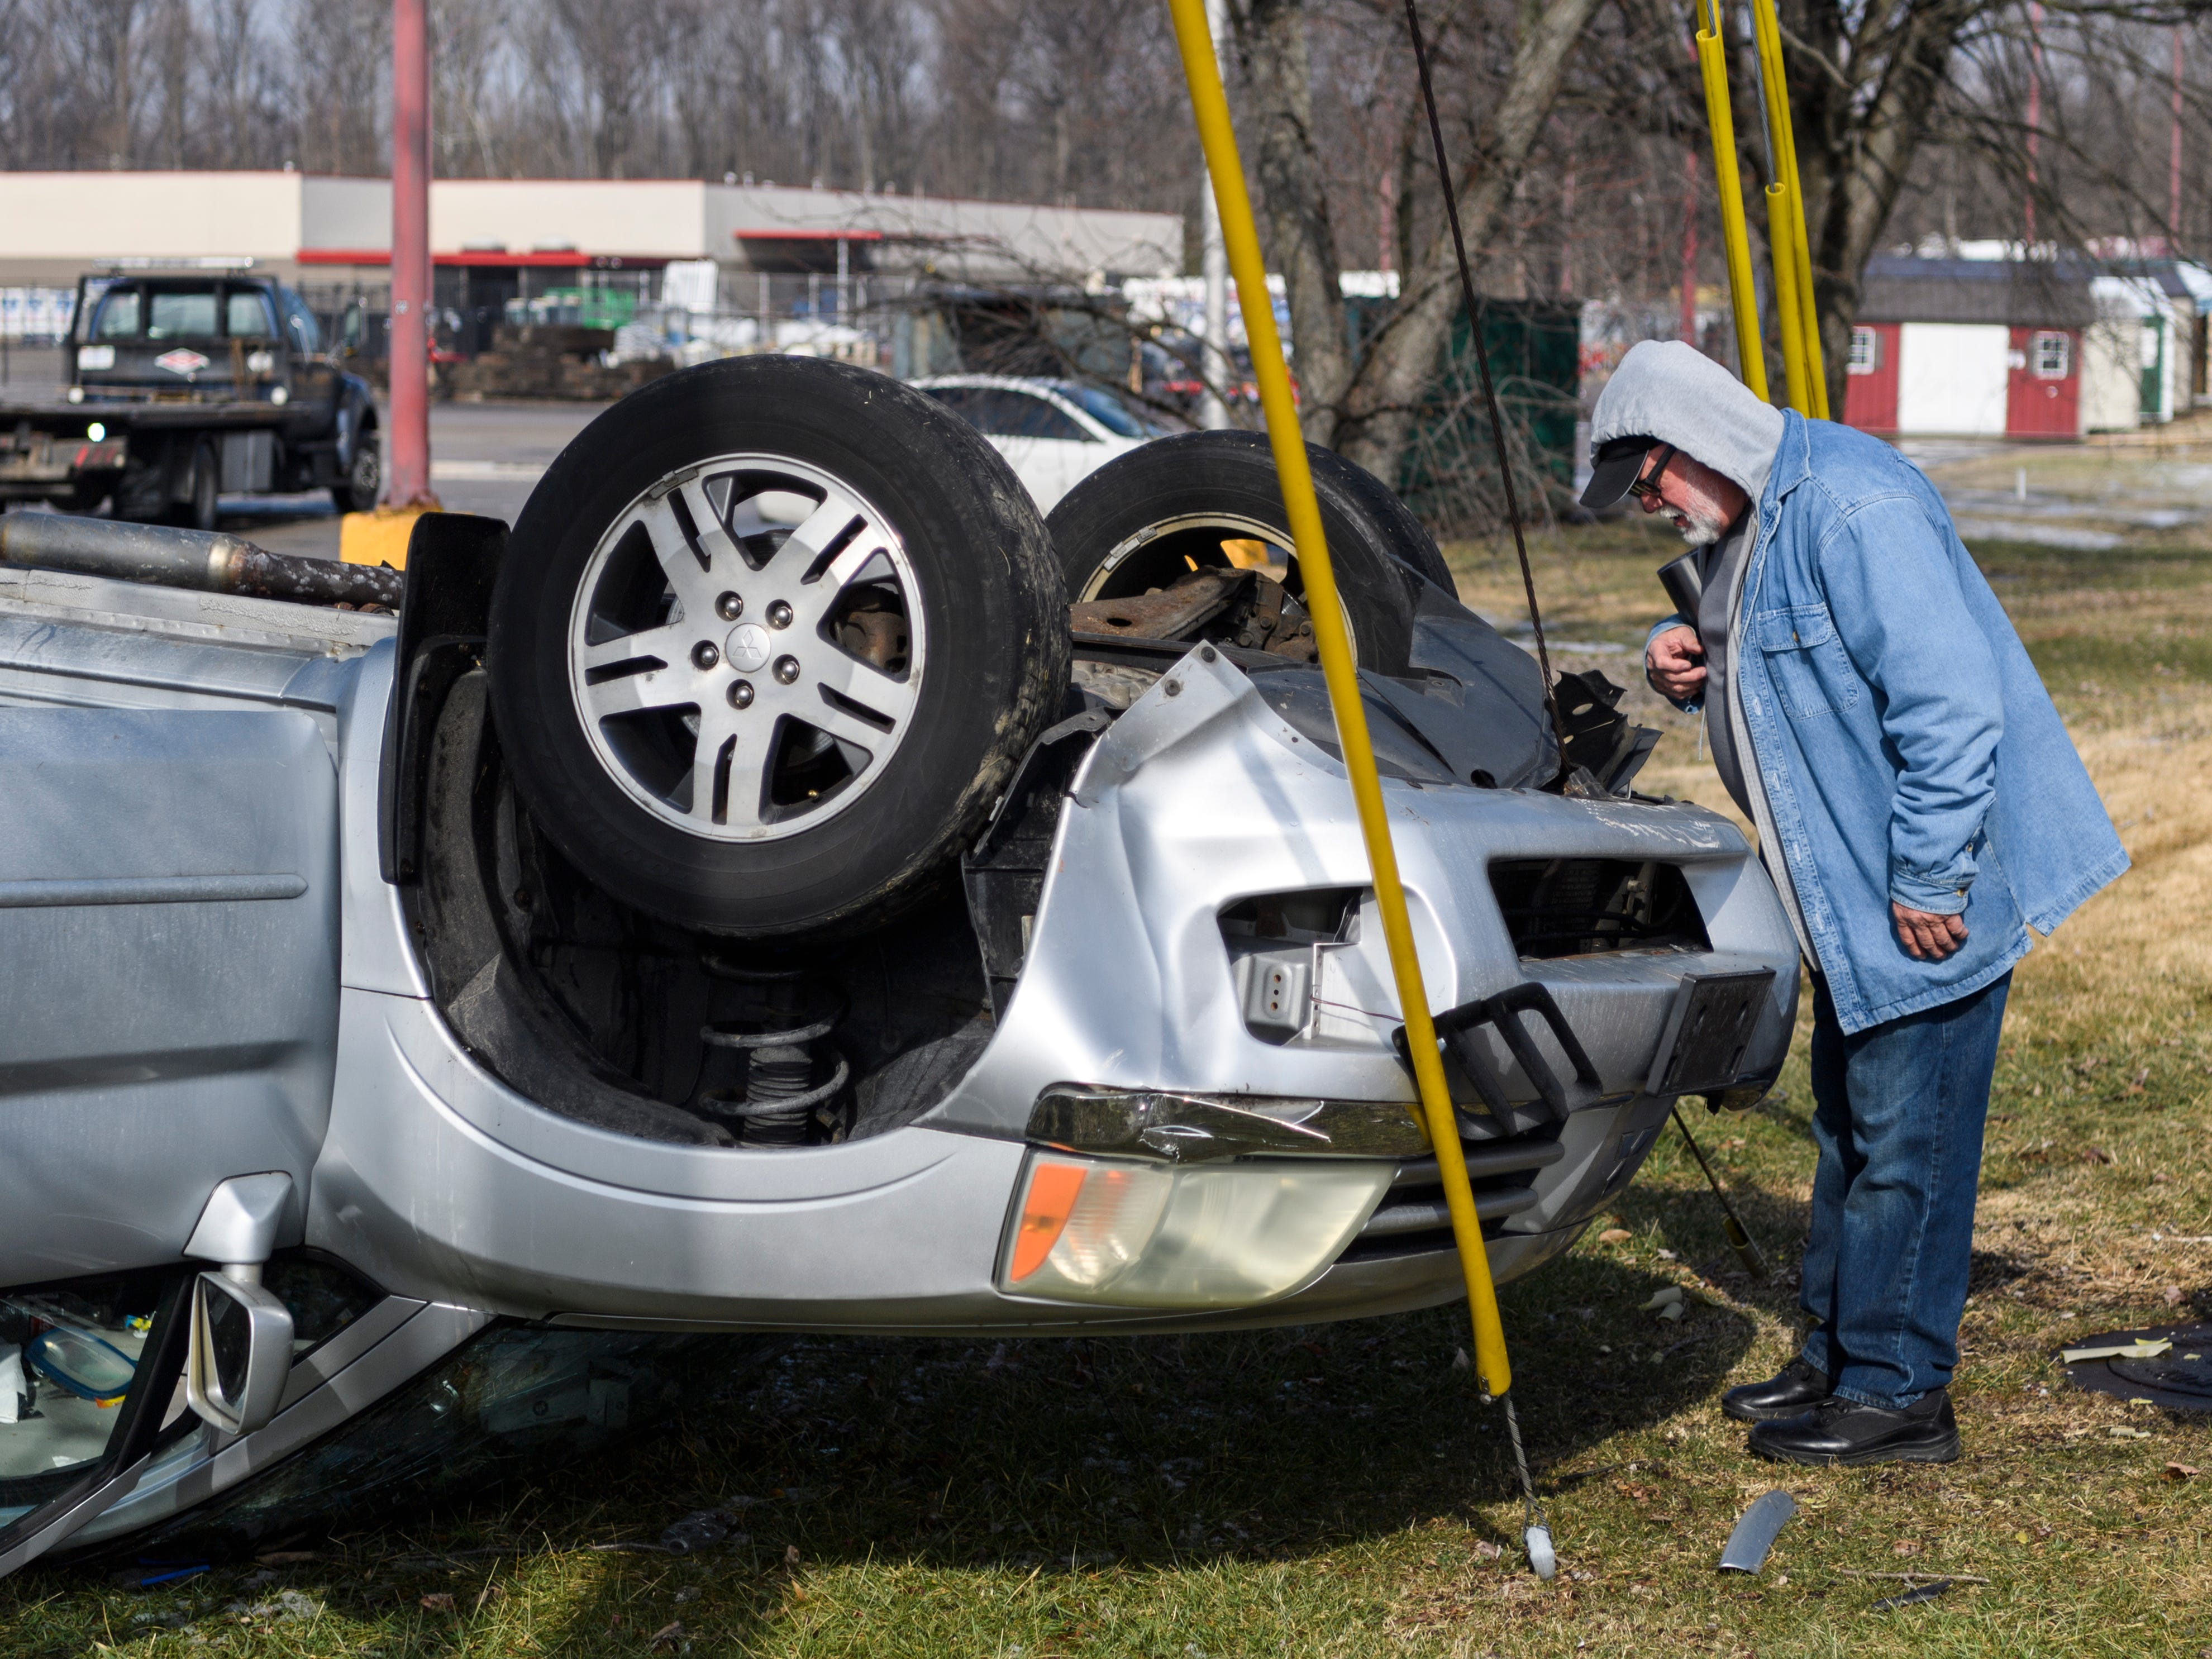 Donnie Bowers takes a closer look at the car he watched flip over in a single-vehicle accident near the intersection of Boeke Road and Morgan Avenue in Evansville, Ind., Friday, Feb. 1, 2019. Bowers and his friend Bill Belwood, not pictured, were talking in the parking lot of Hardee's, across the street, when he saw the vehicle flip over and quickly called 911.